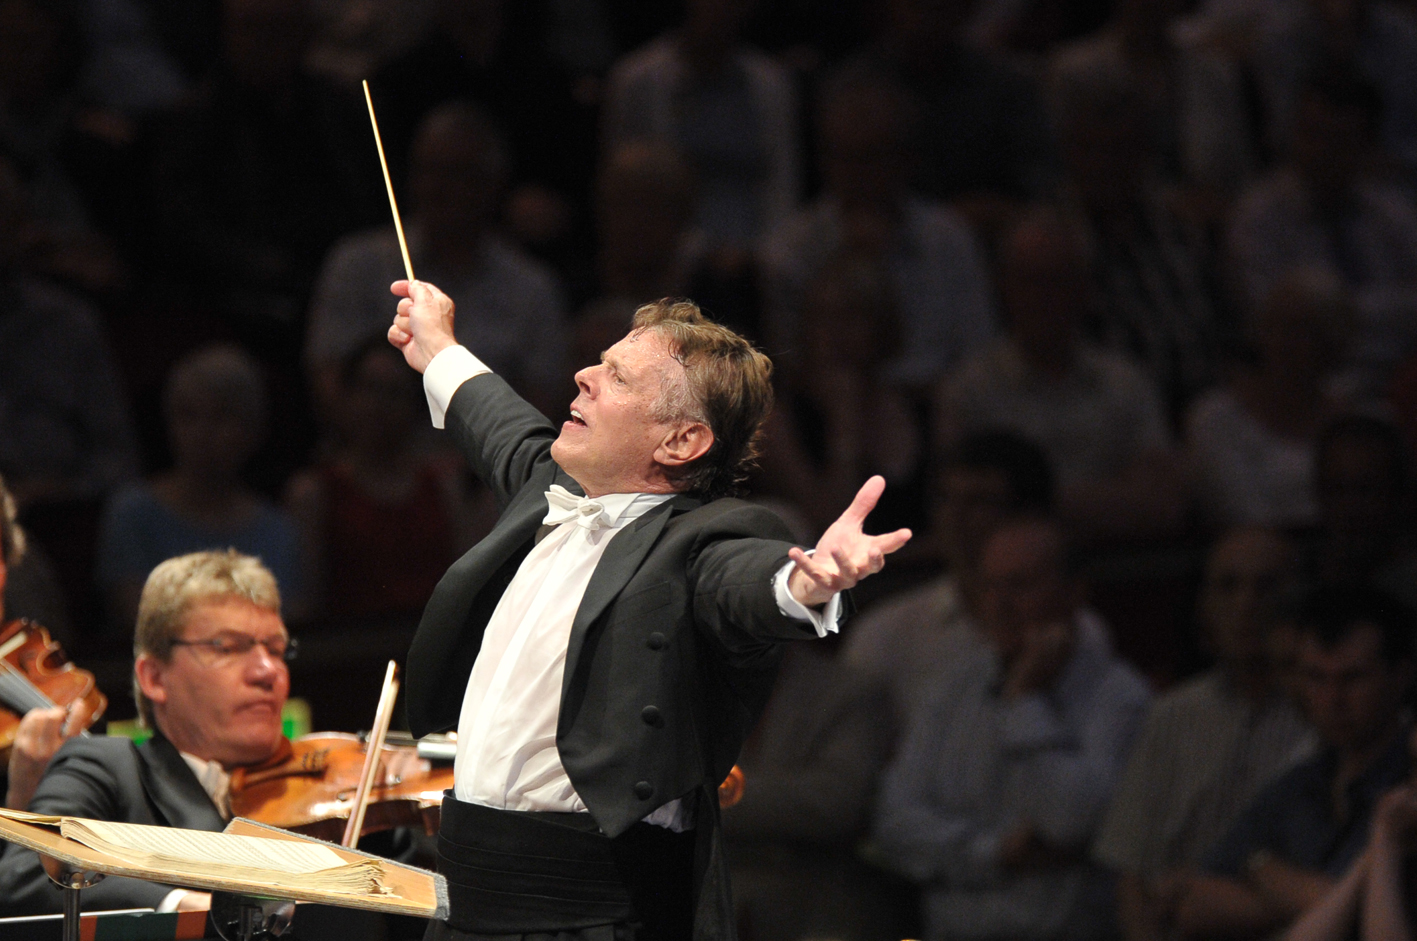 Mariss Jansons at the Proms pictured by Chris Christodoulou